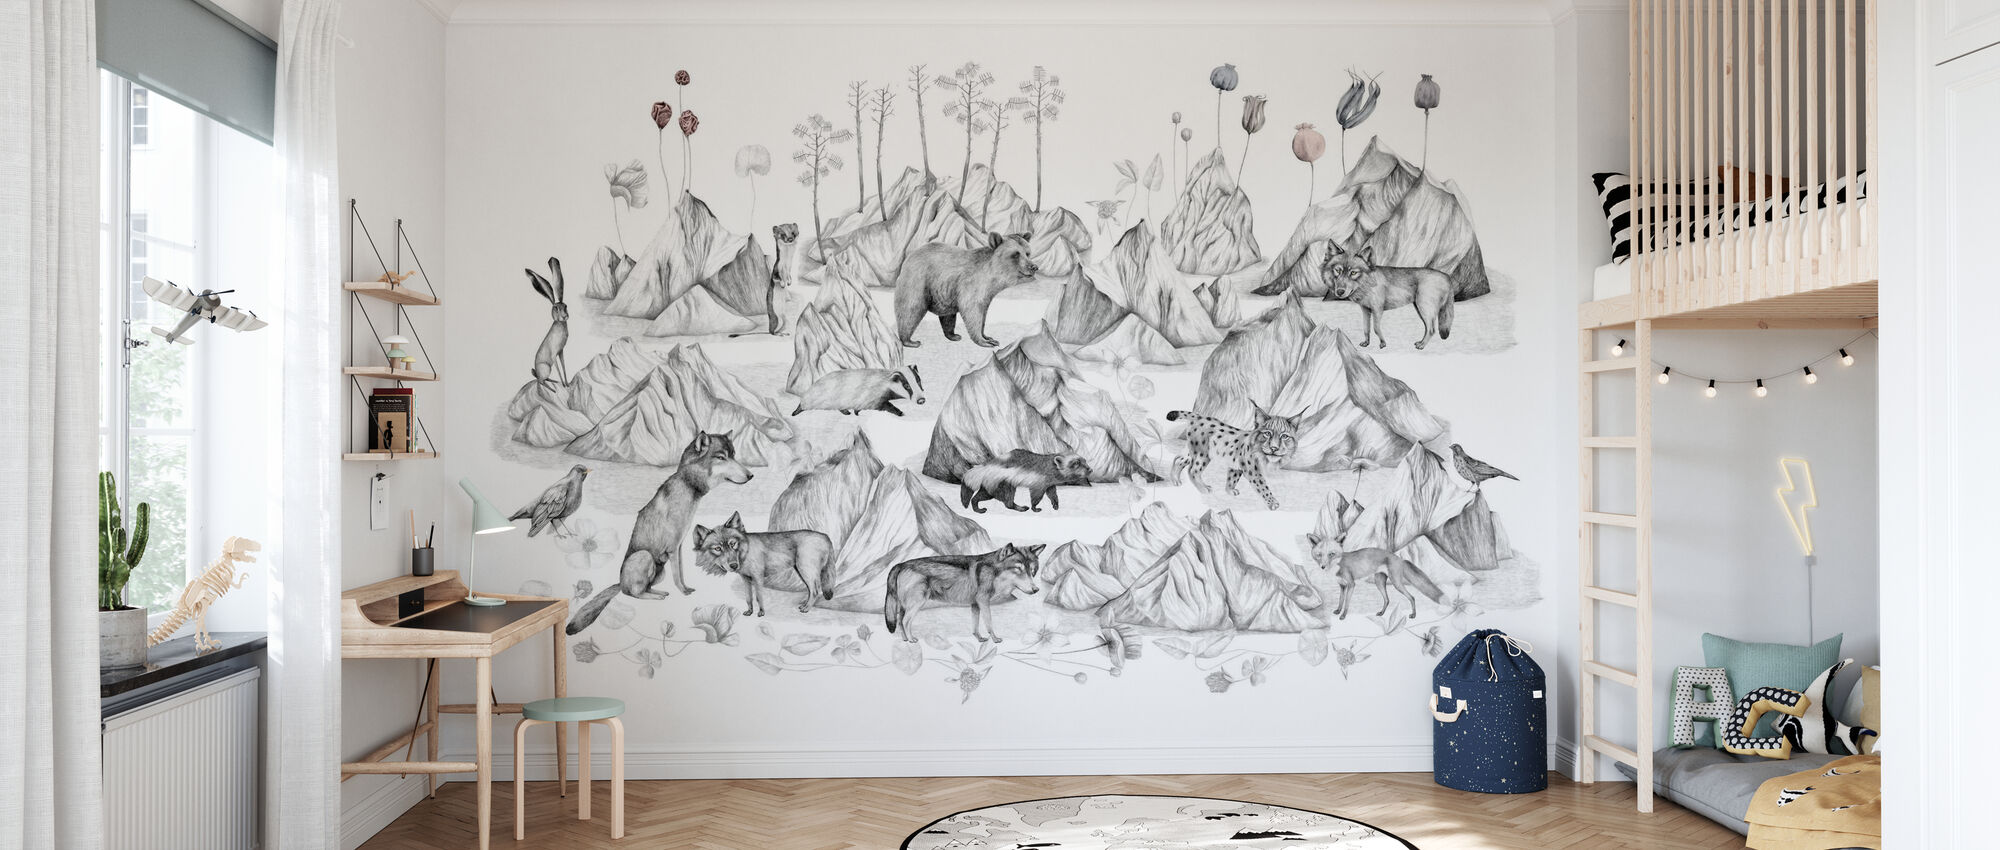 Free in My Landscape - Wallpaper - Kids Room